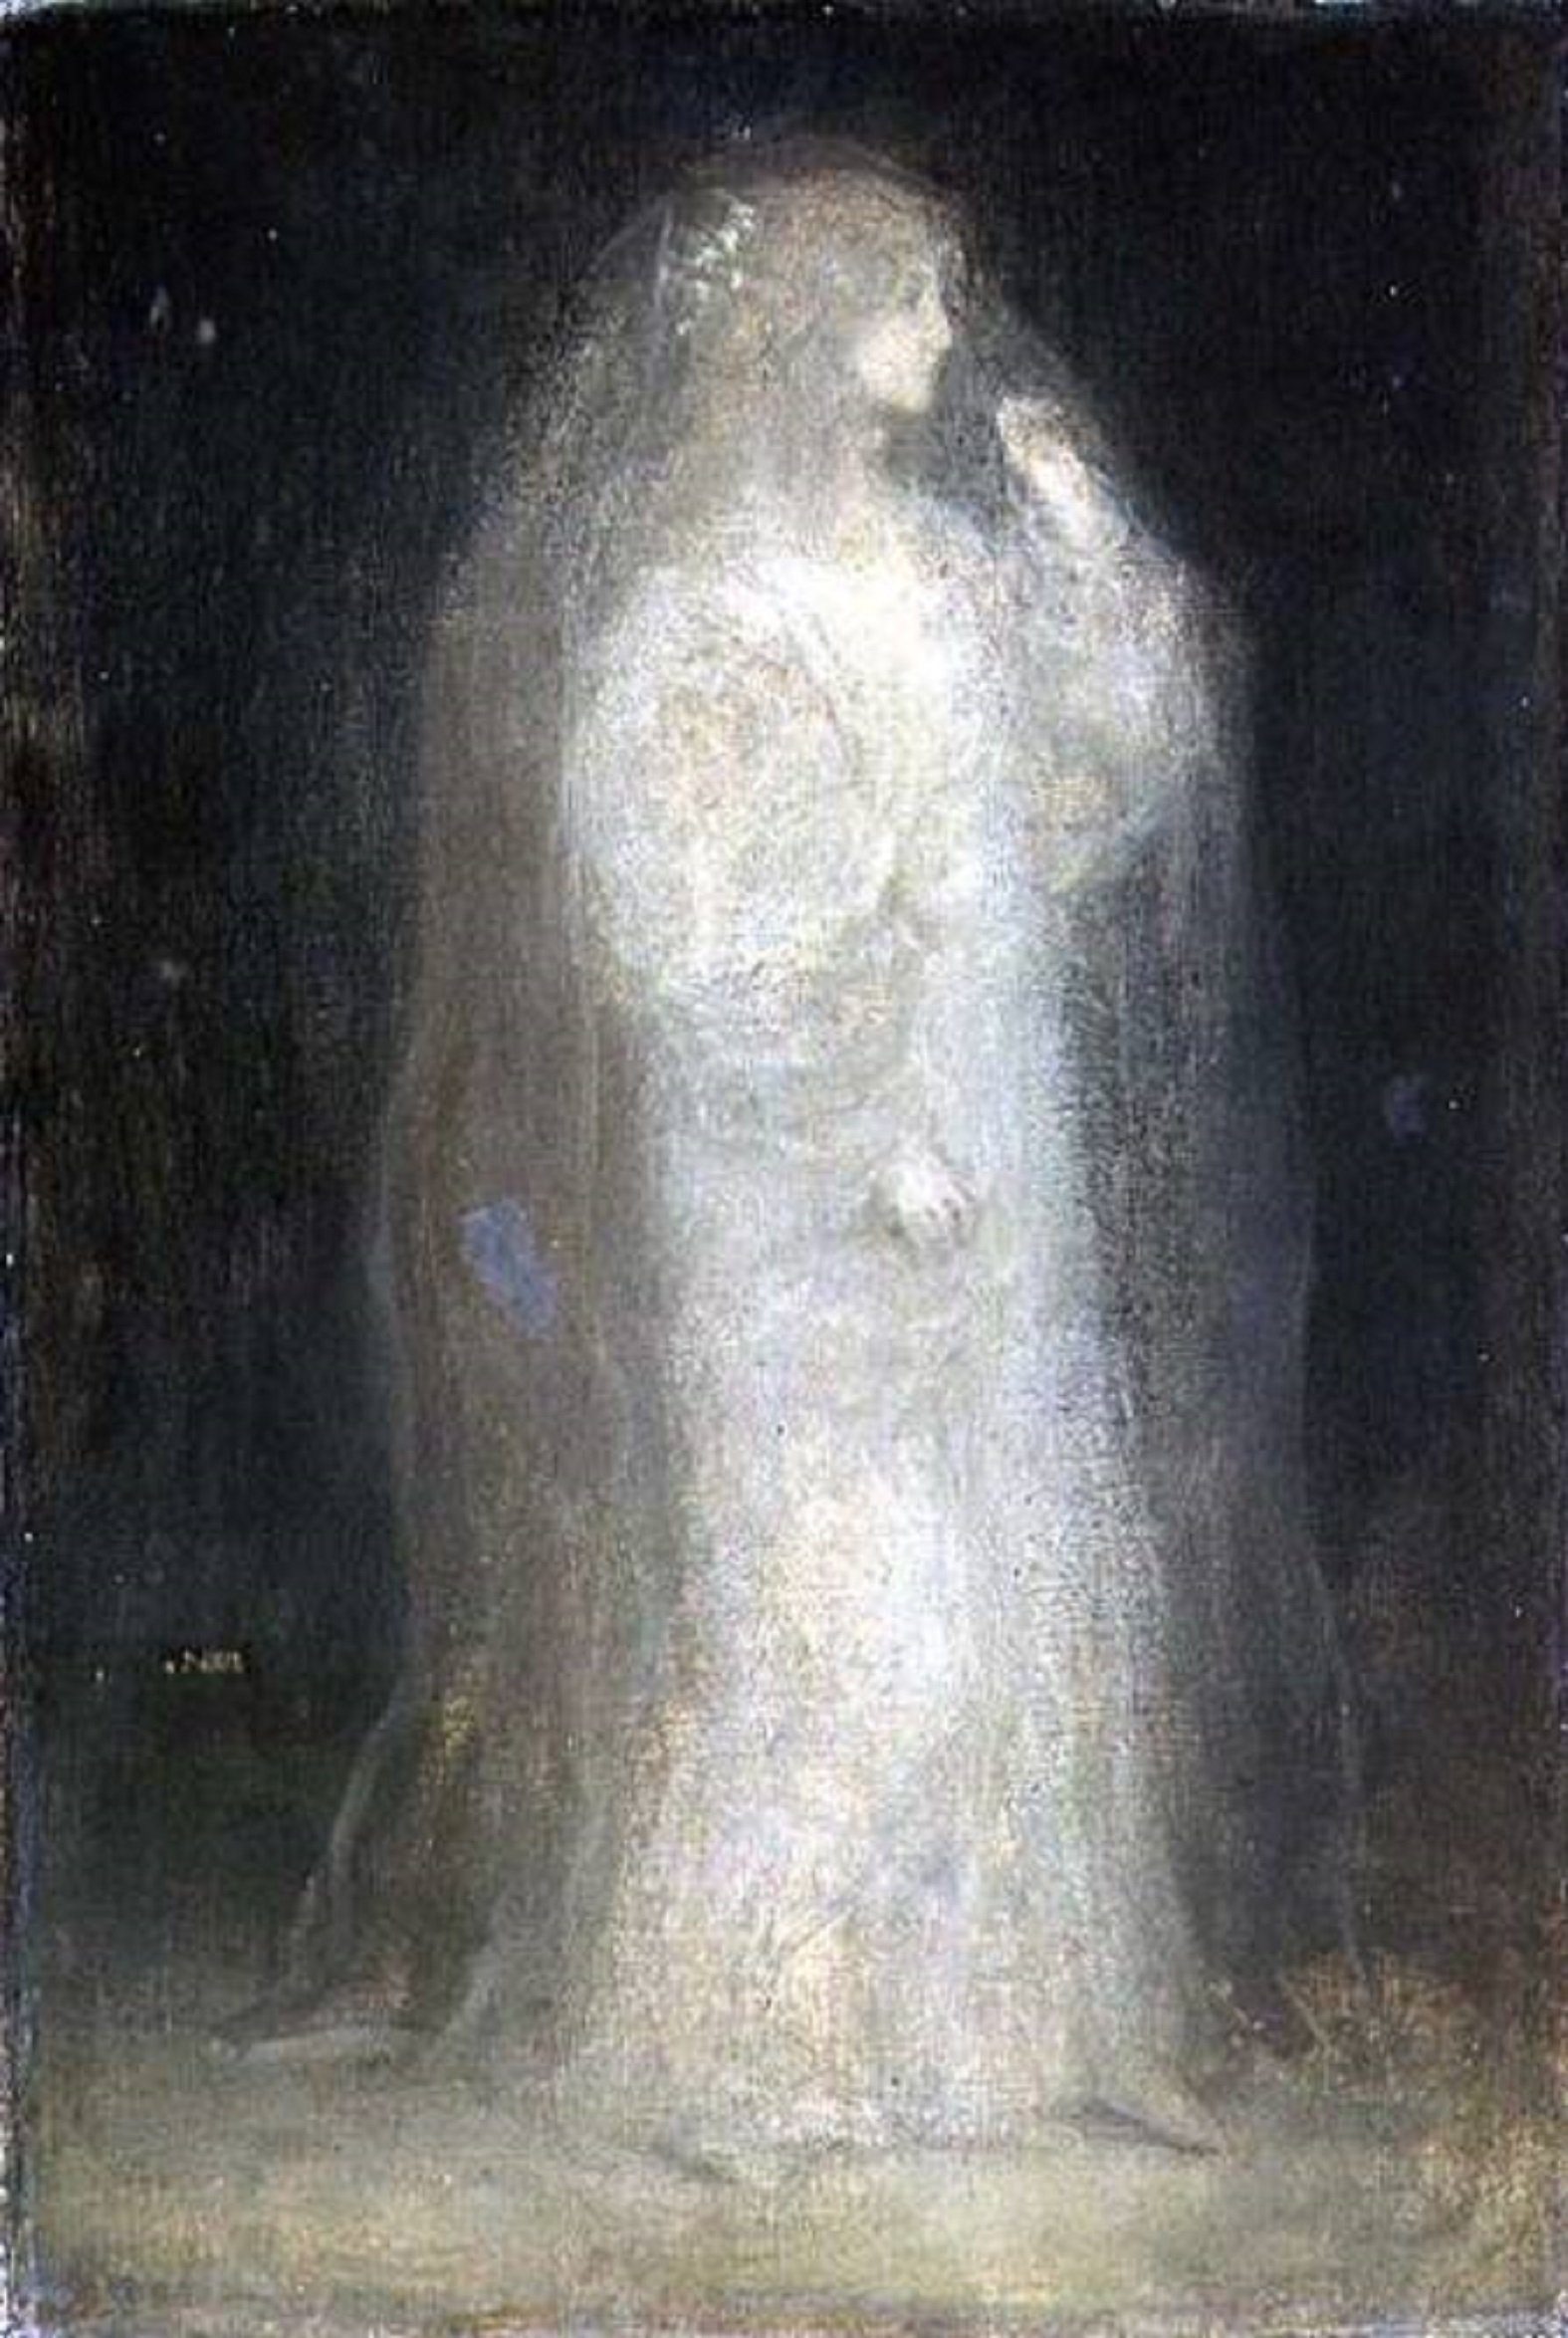 File:Matthijs Maris The Bride, or Novice taking the Veil, c 1887.jpg